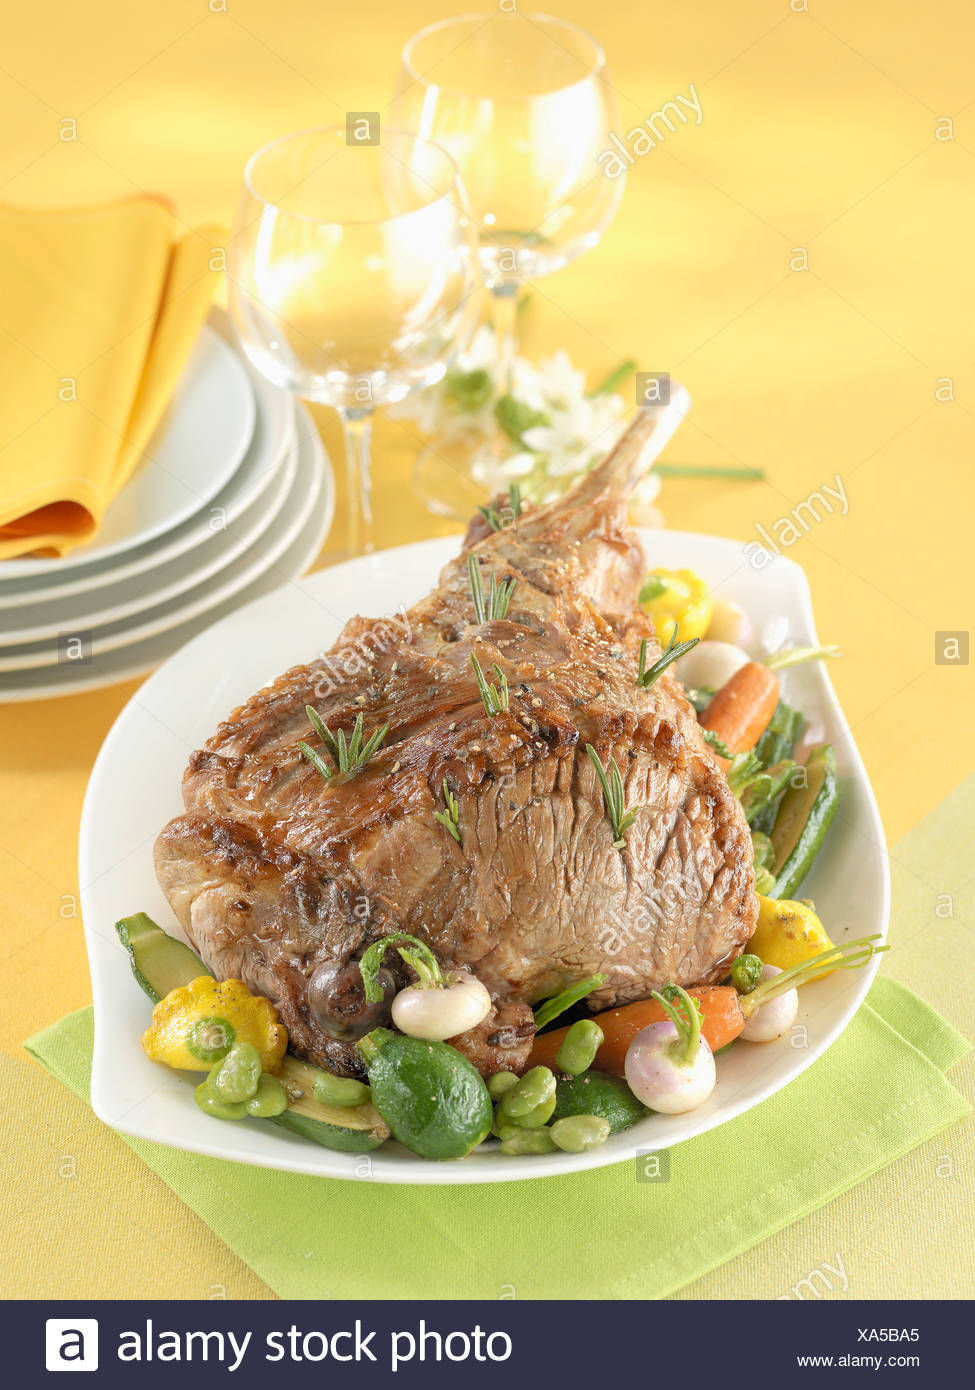 Leg of lamb with spring vegetables - Stock Image